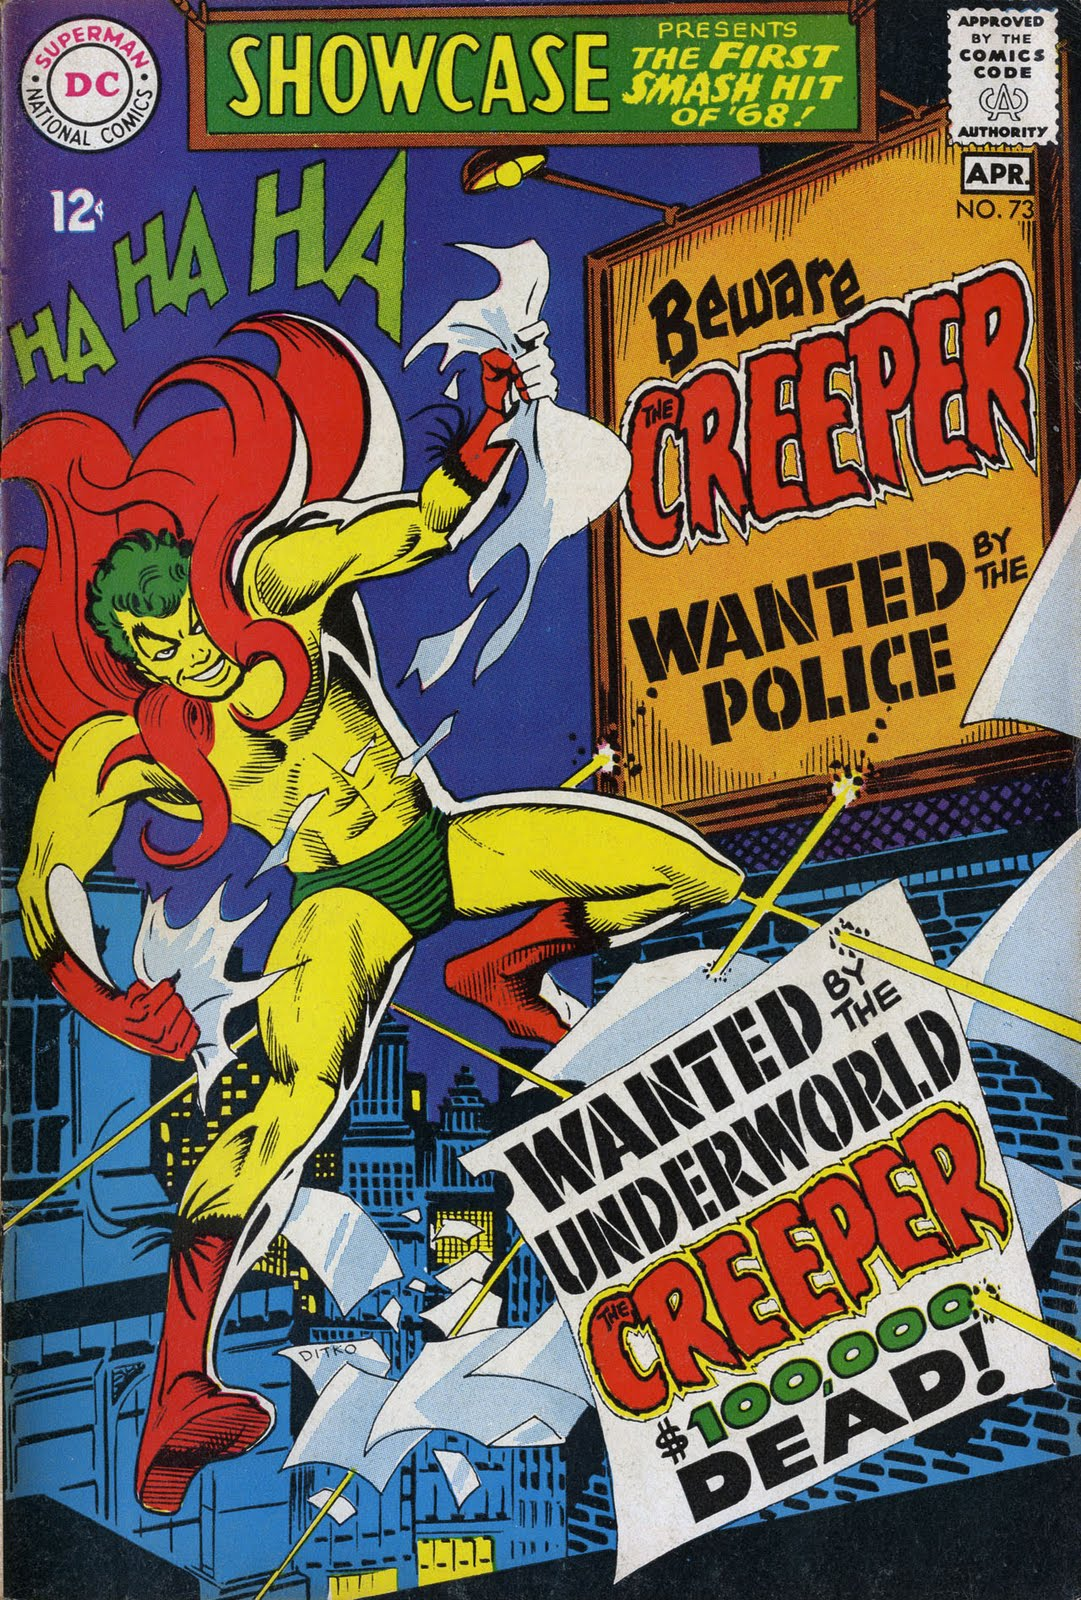 The 73 Best African Beautiful Images On Pinterest: Silver Age Comics: Showcase #73: The Creeper Becomes DC's